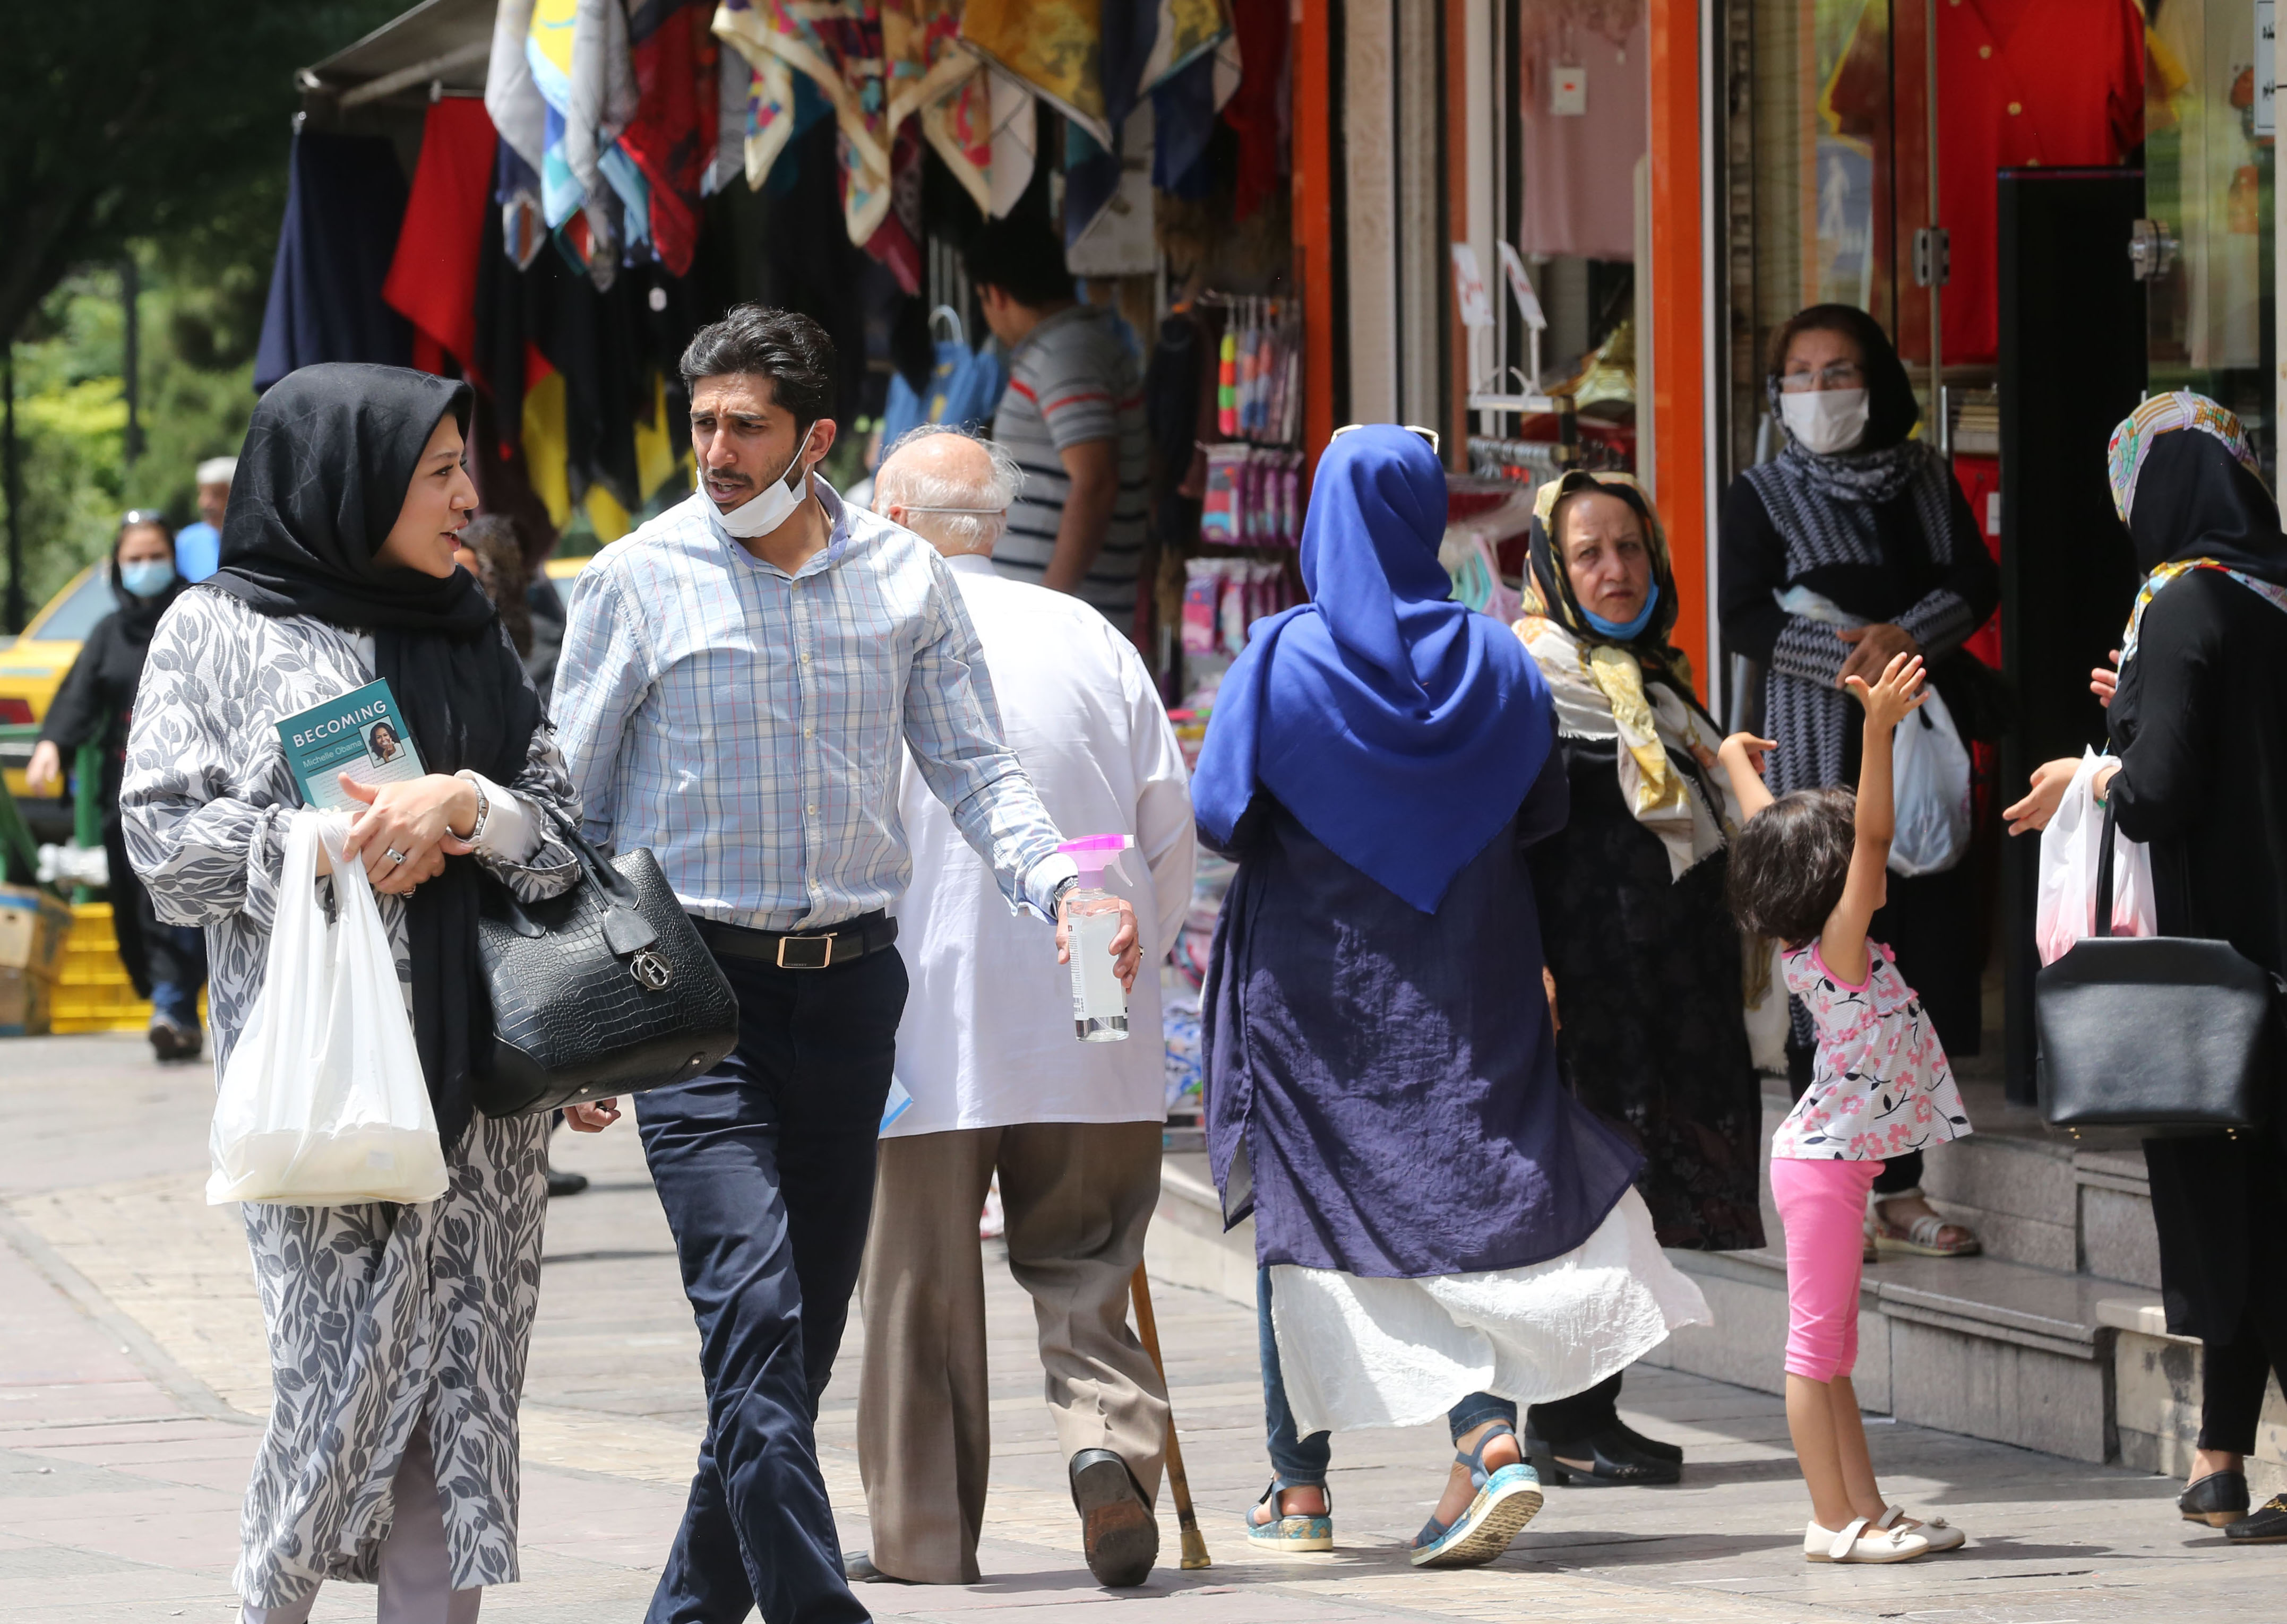 Iran's COVID-19 cases rise to 173,832 with 2,043 new infections